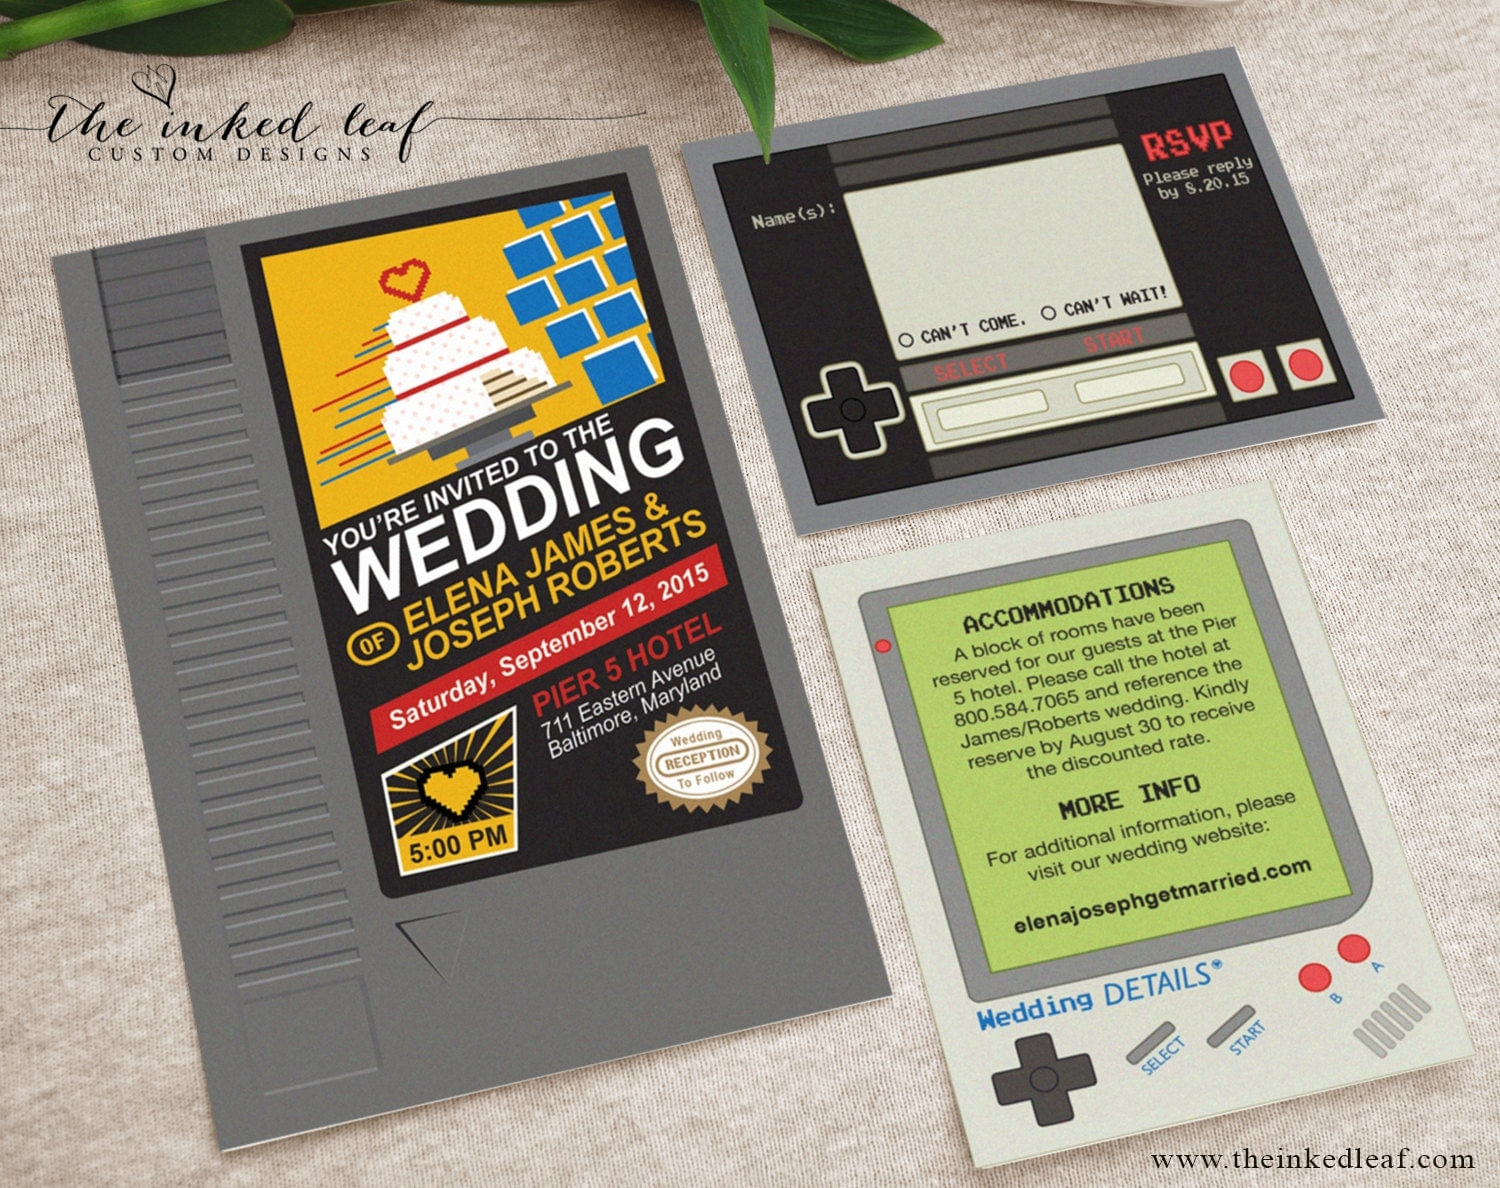 Video Game Invitations was beautiful invitations example